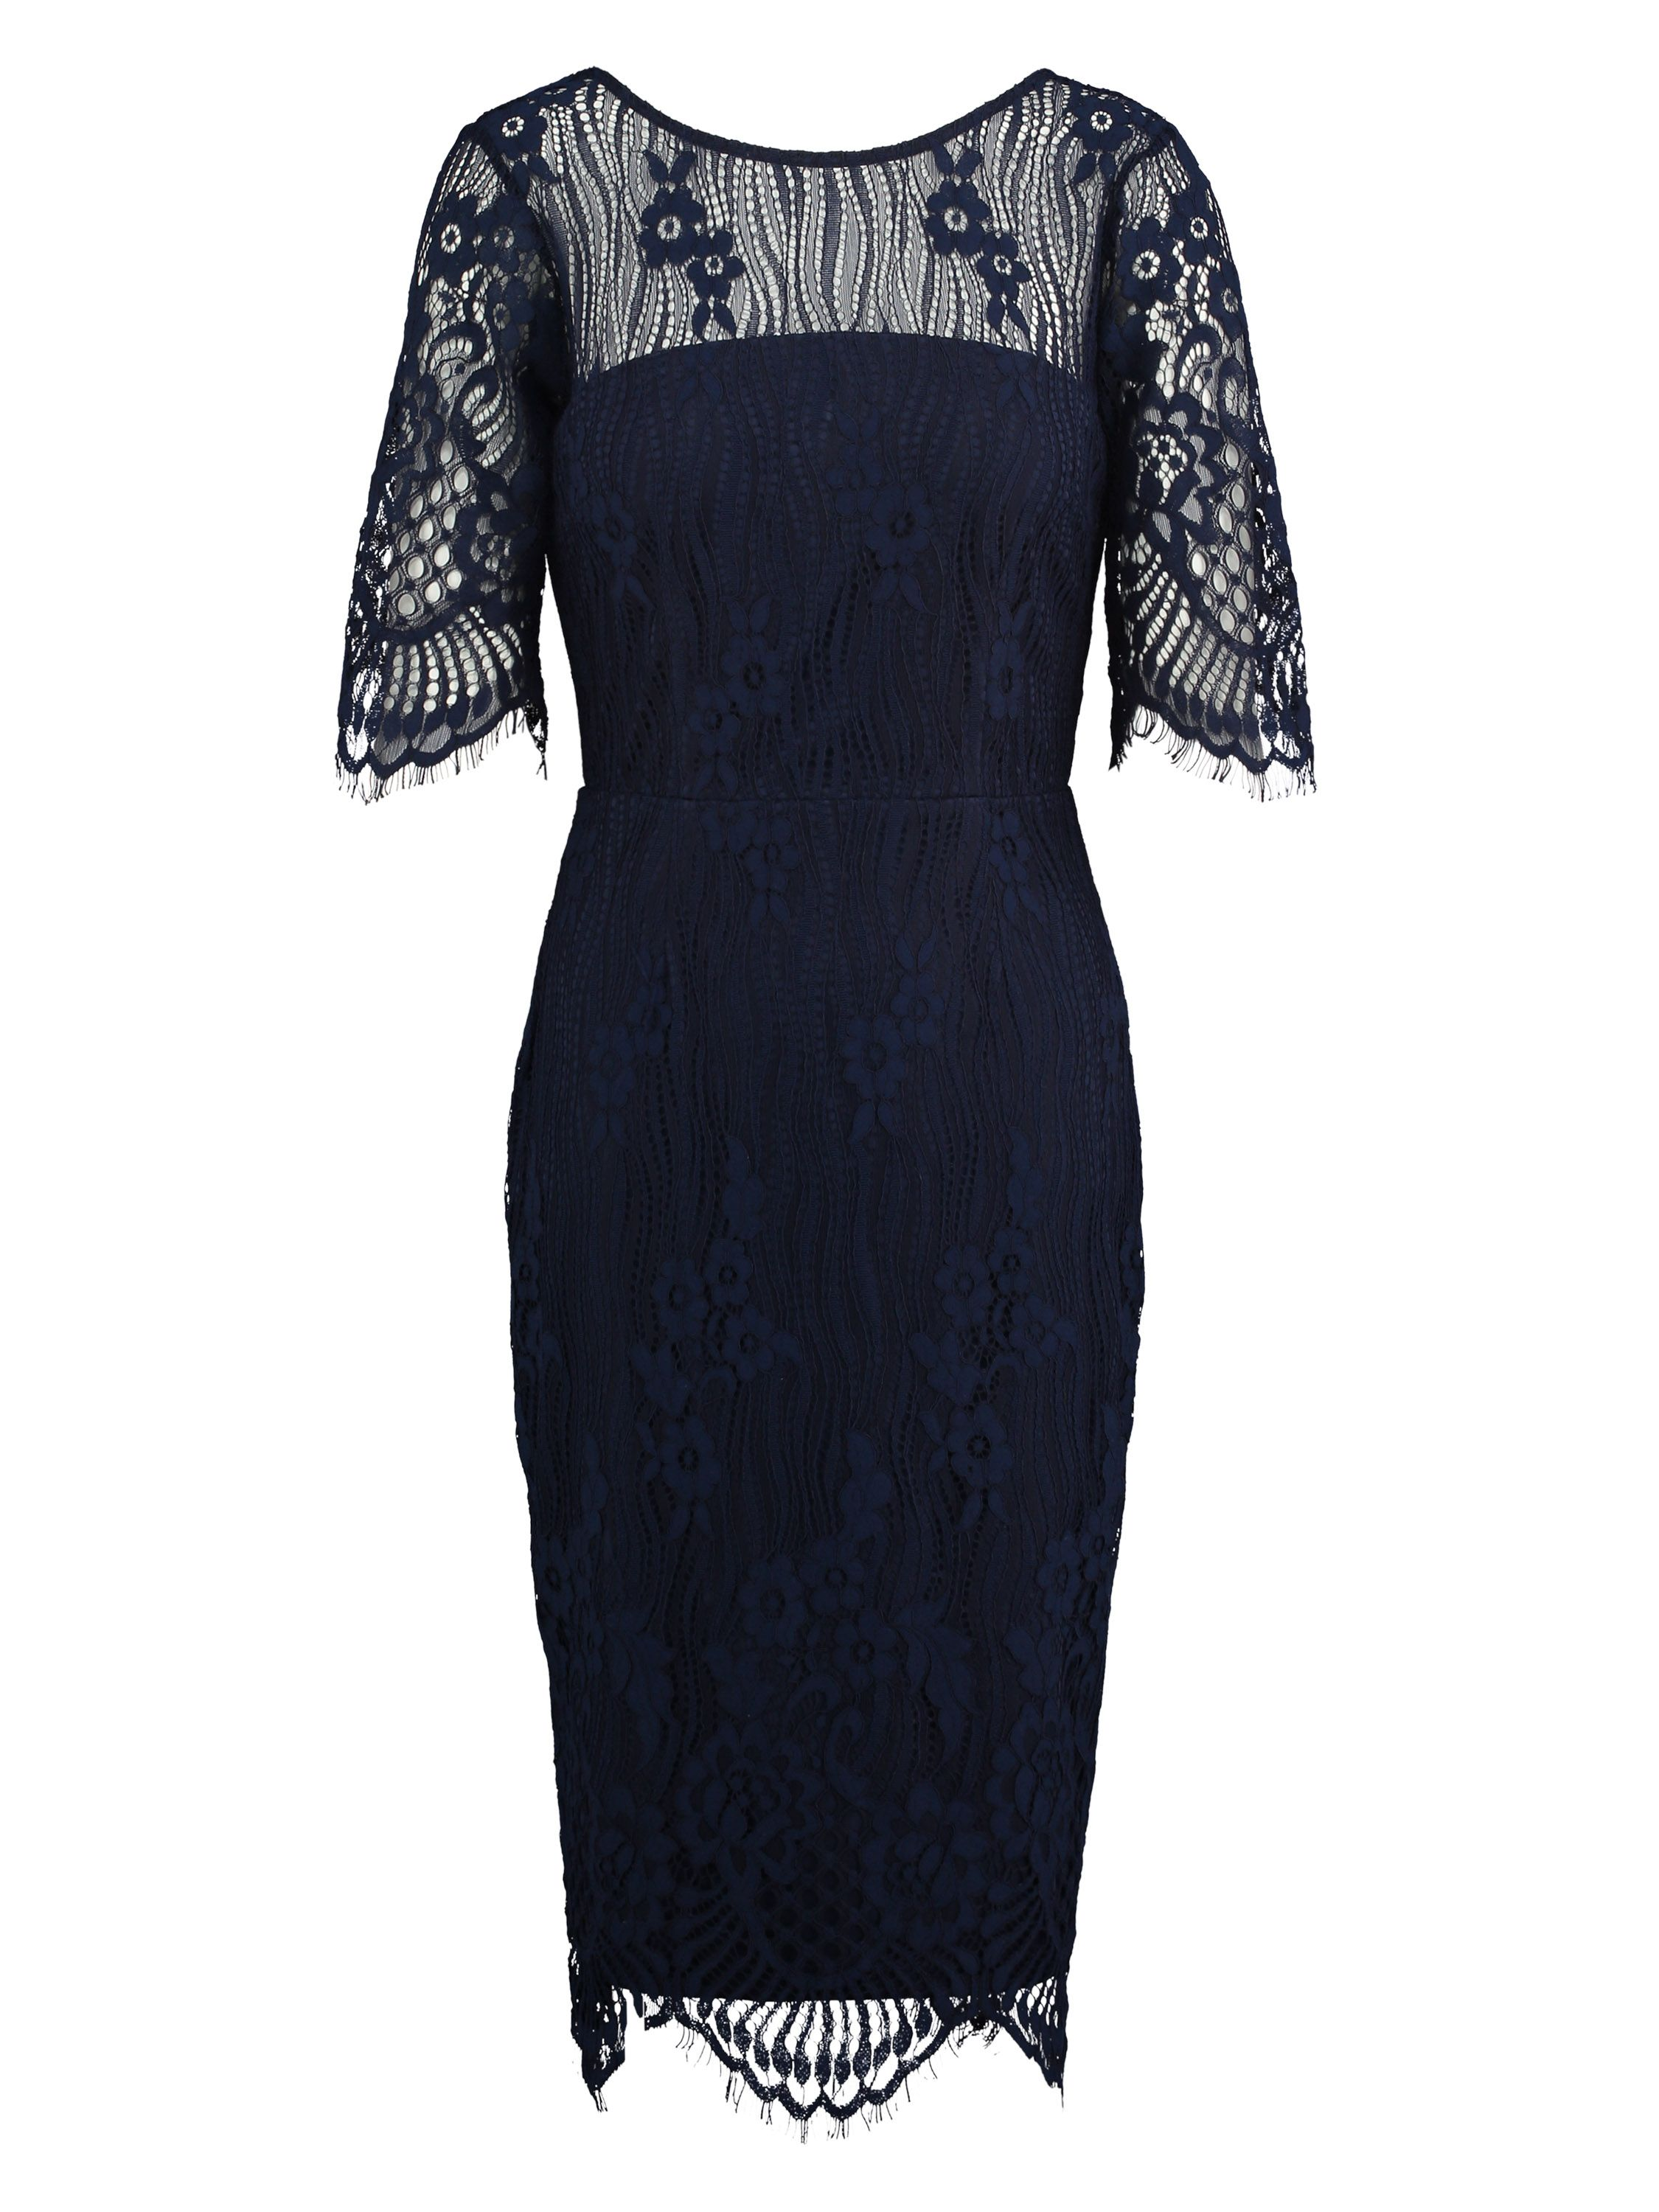 Sugarhill Boutique Grace Lace Dress, Dark Blue